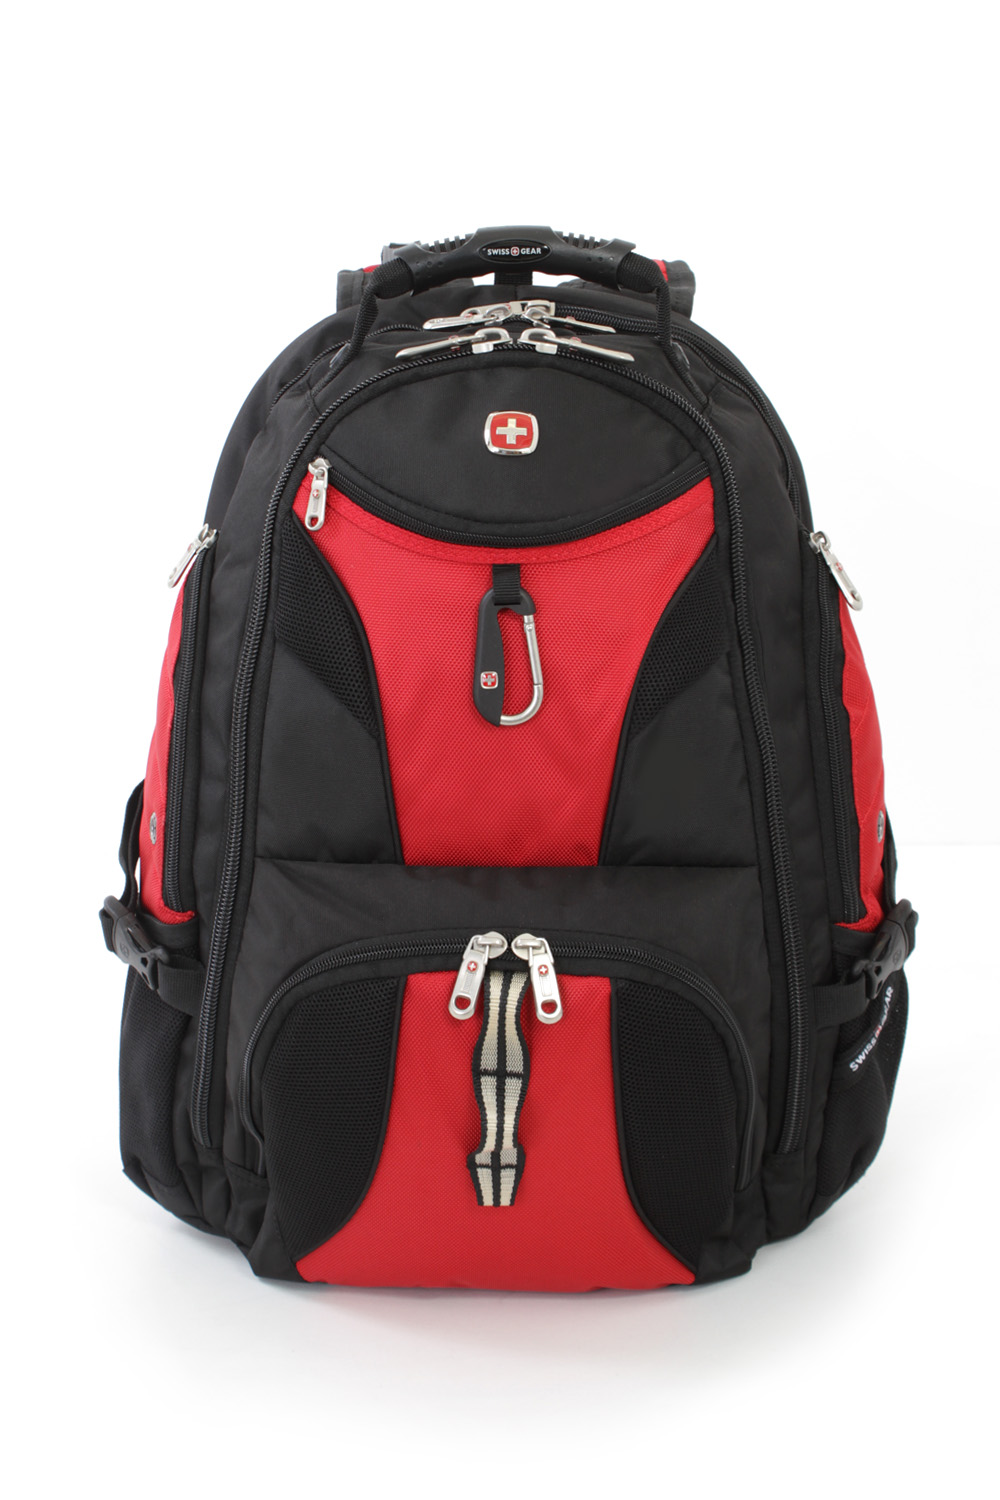 Swiss Gear Red And Black Backpack | Cg Backpacks